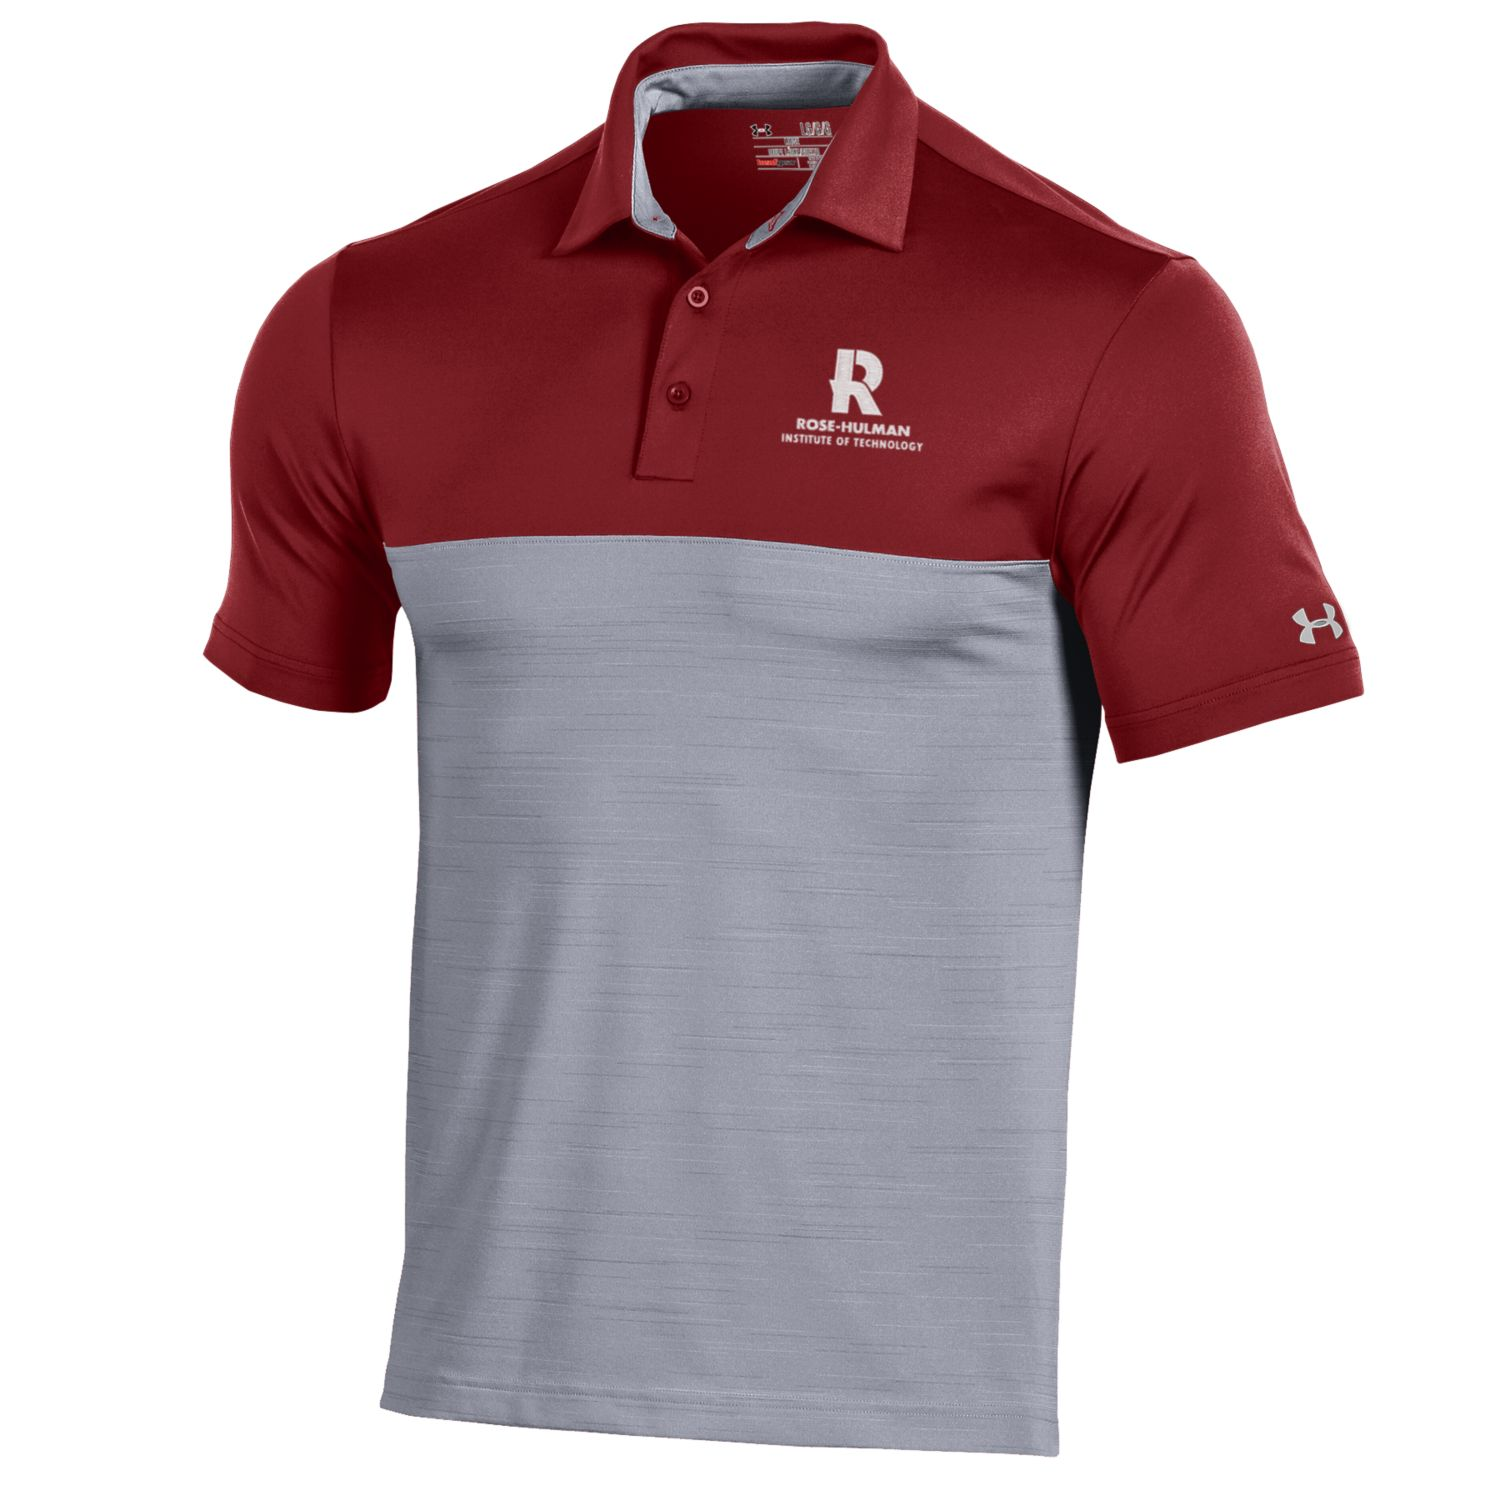 Under Armour Colorblack Polo Shirt